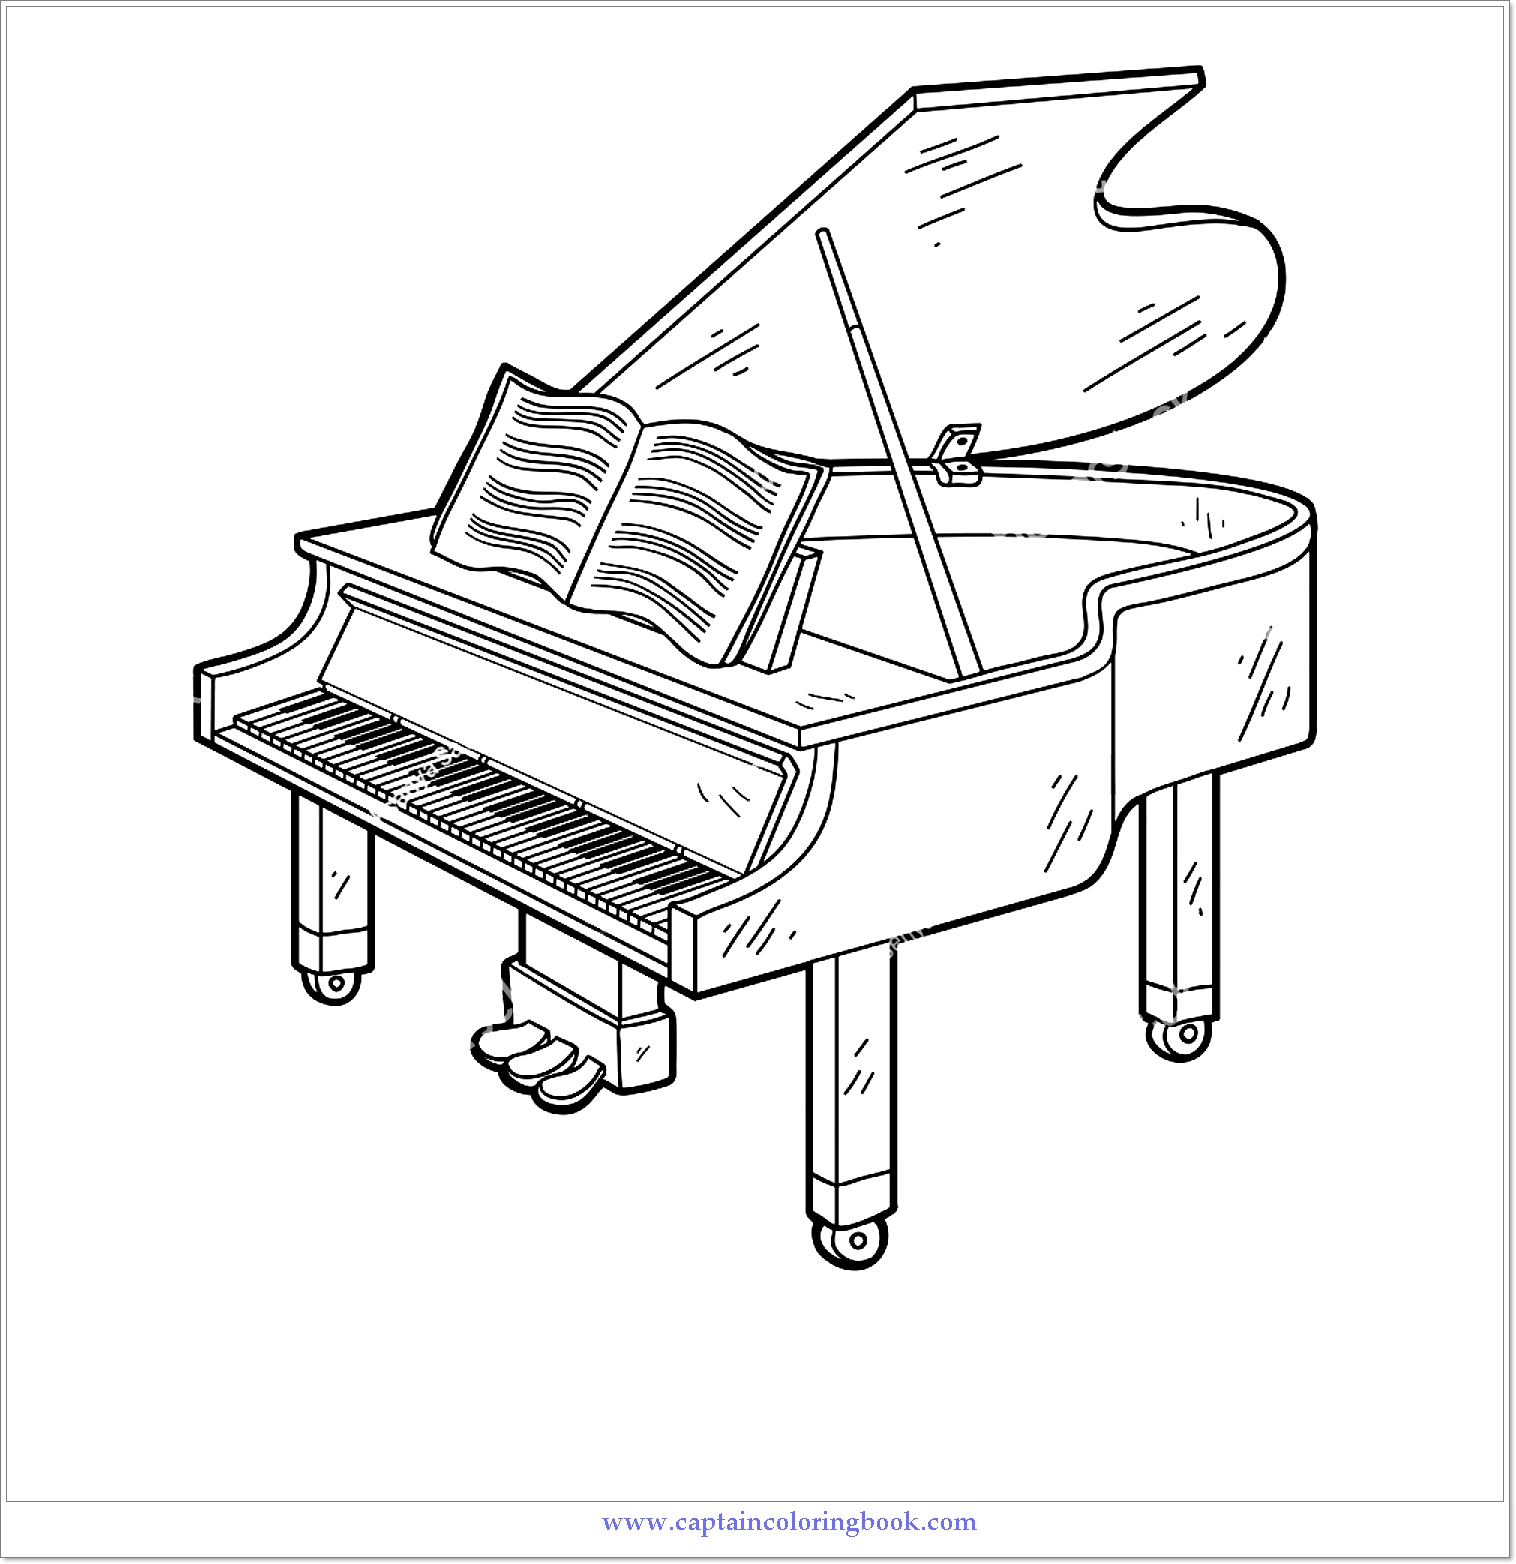 piano pictures to color piano keyboard coloring page at getcoloringscom free piano pictures color to